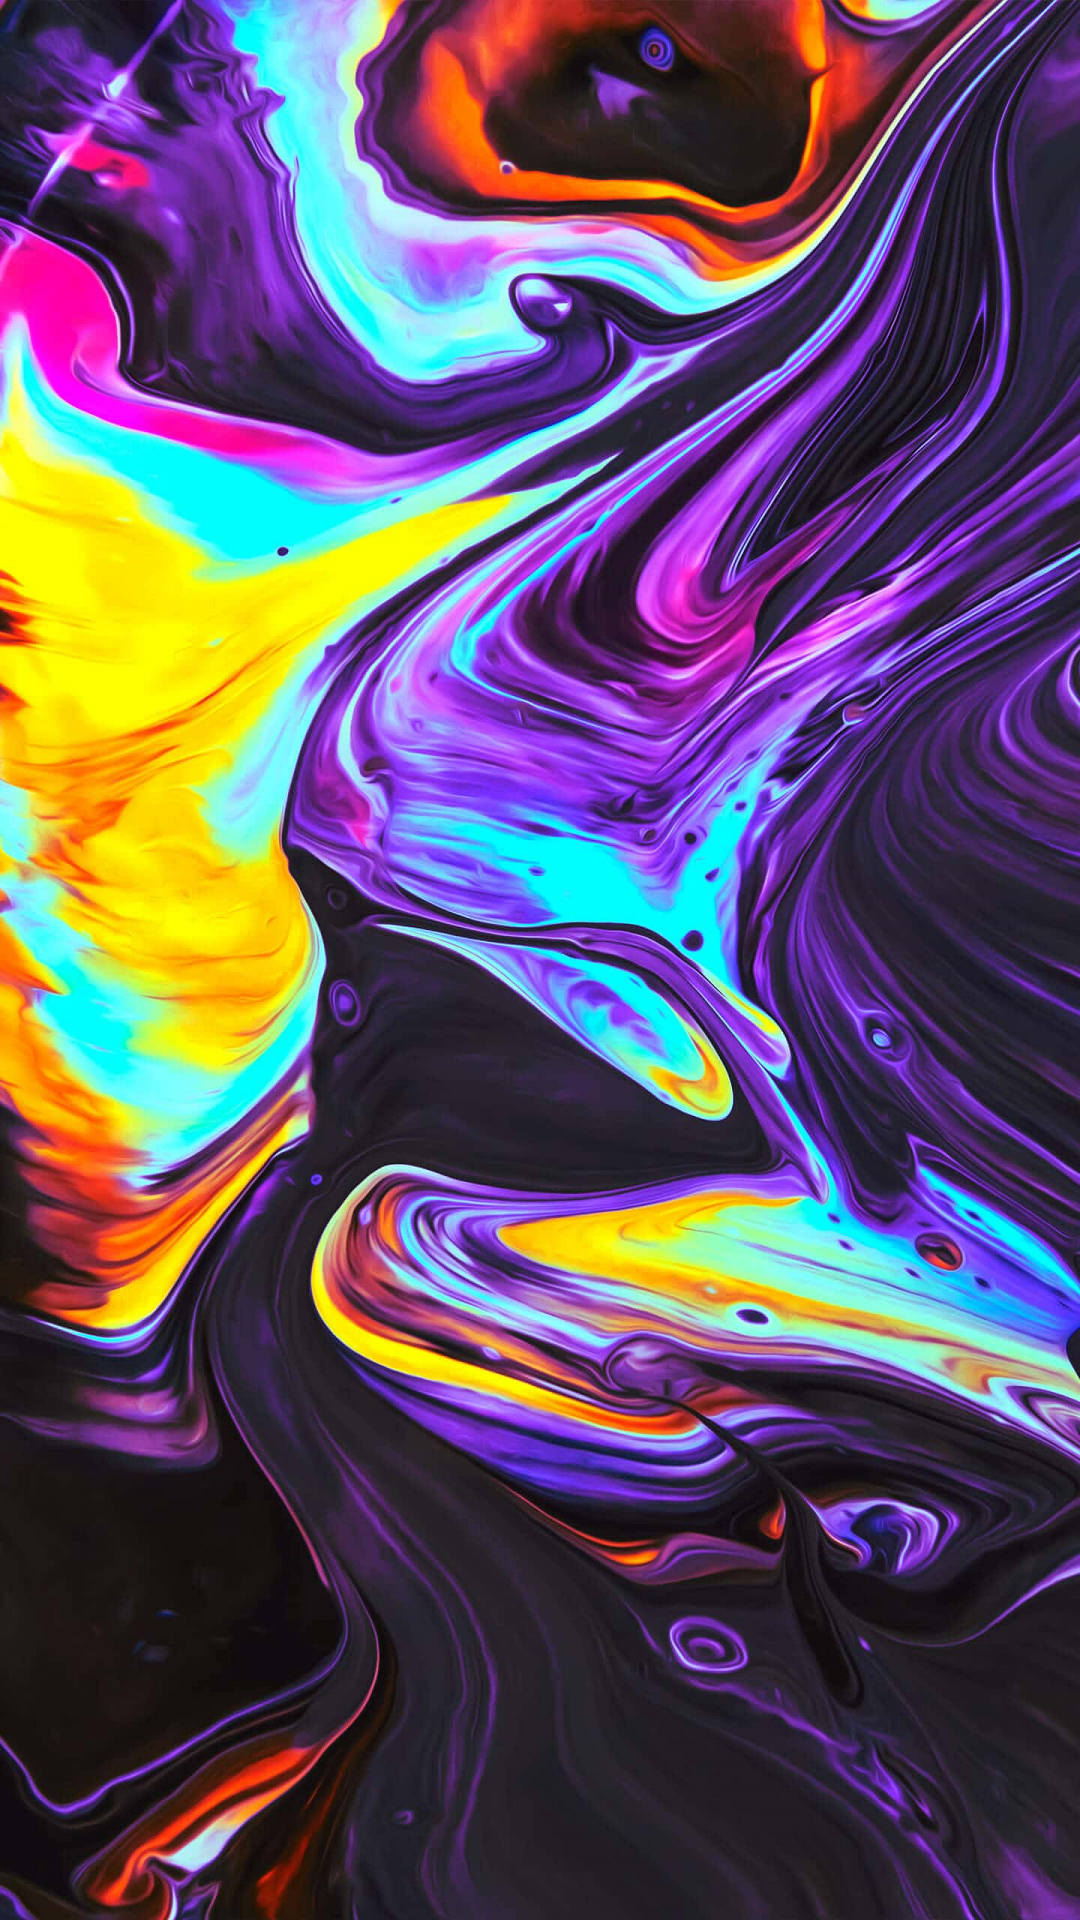 10 cool wallpapers 1080p HeroScreen in 2020 Abstract